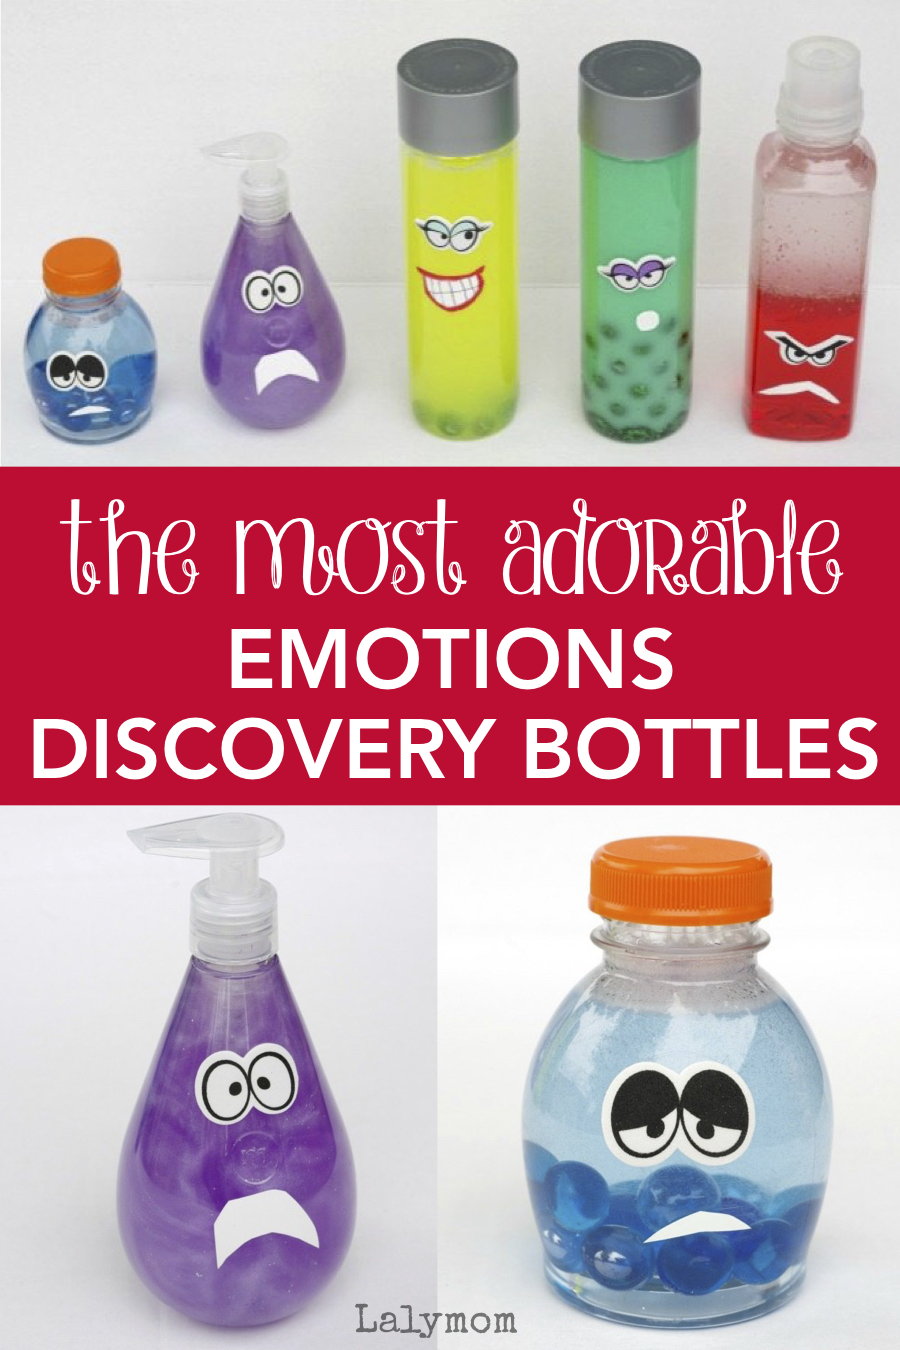 How to make Emotions Discovery Bottles - Help kids learn about emotions